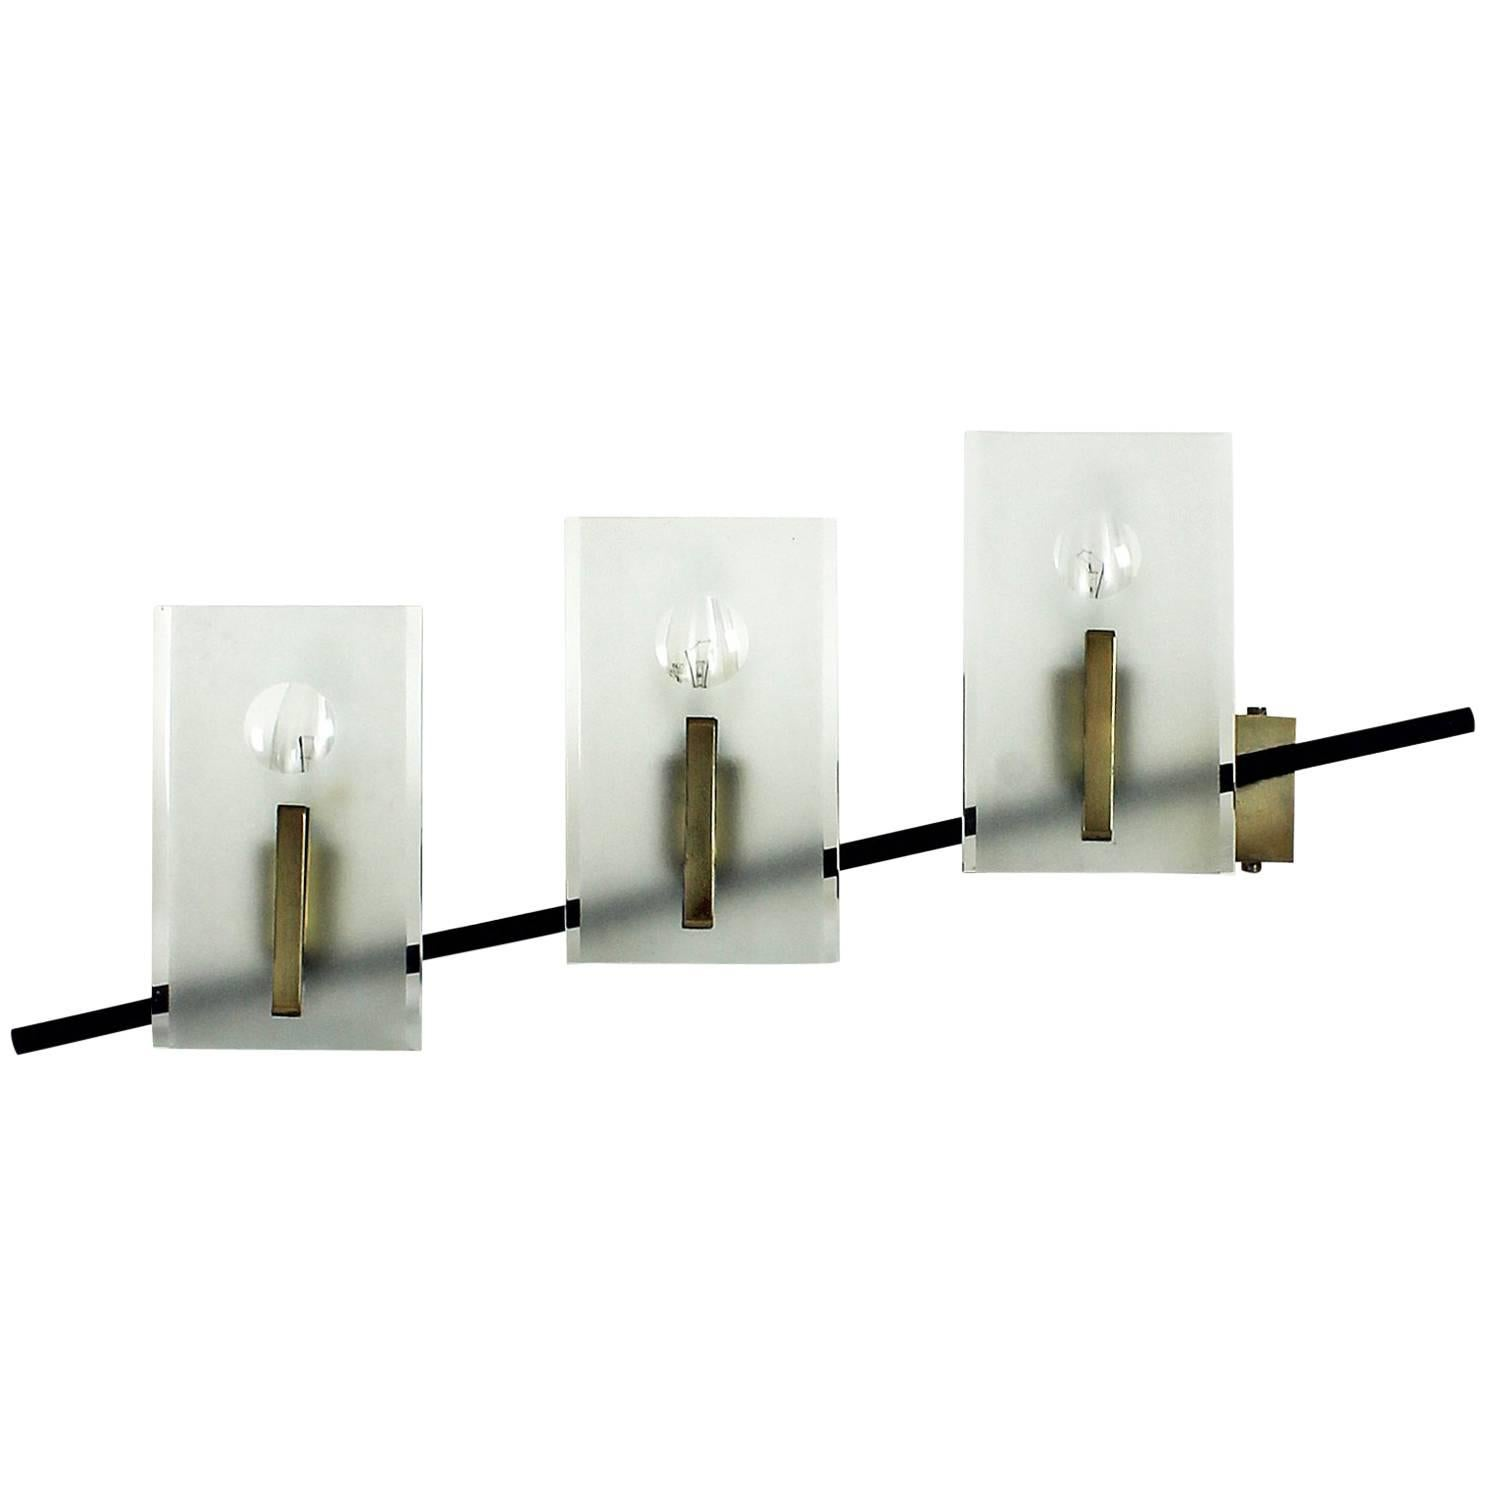 1950s Wall Light  in black steel, brass and glass. Attributed to Stilnovo. Italy